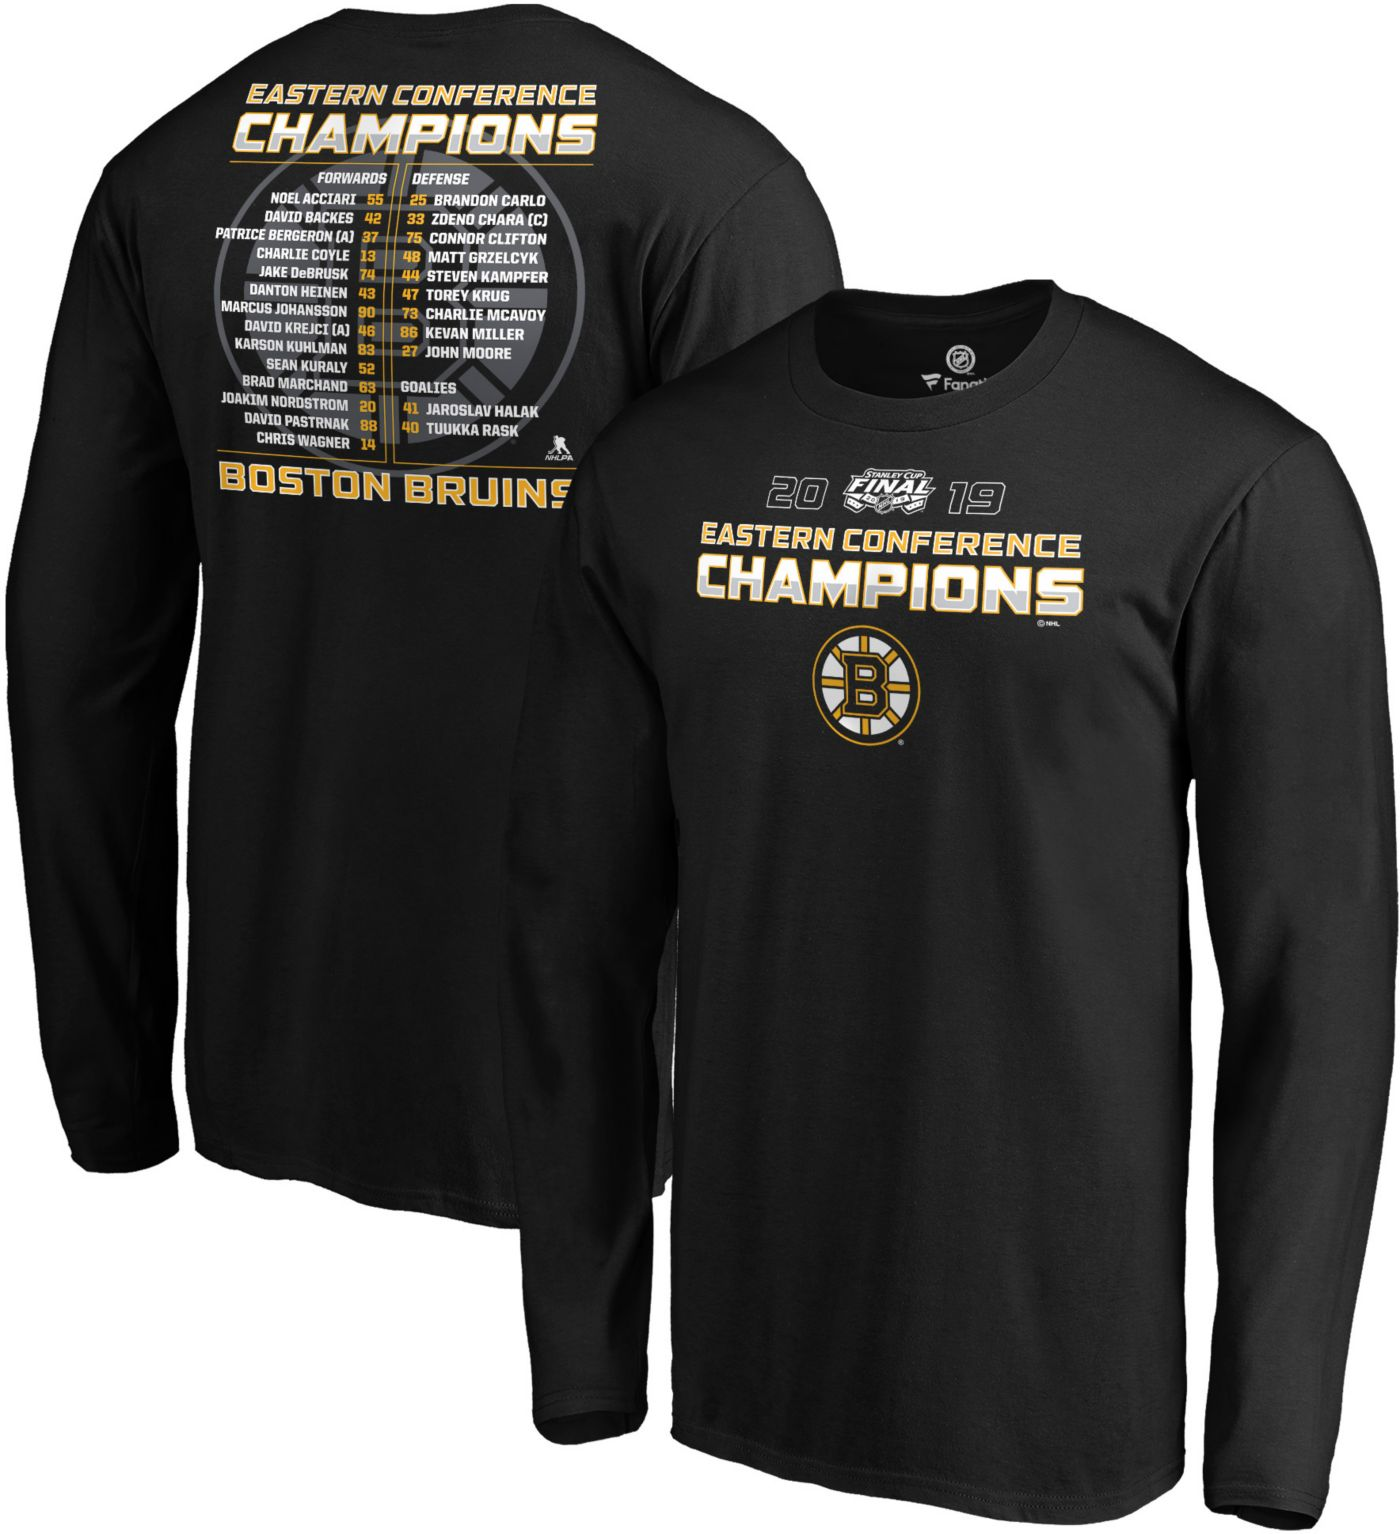 NHL Men's 2019 NHL Eastern Conference Champions Boston Bruins Roster Long Sleeve Shirt